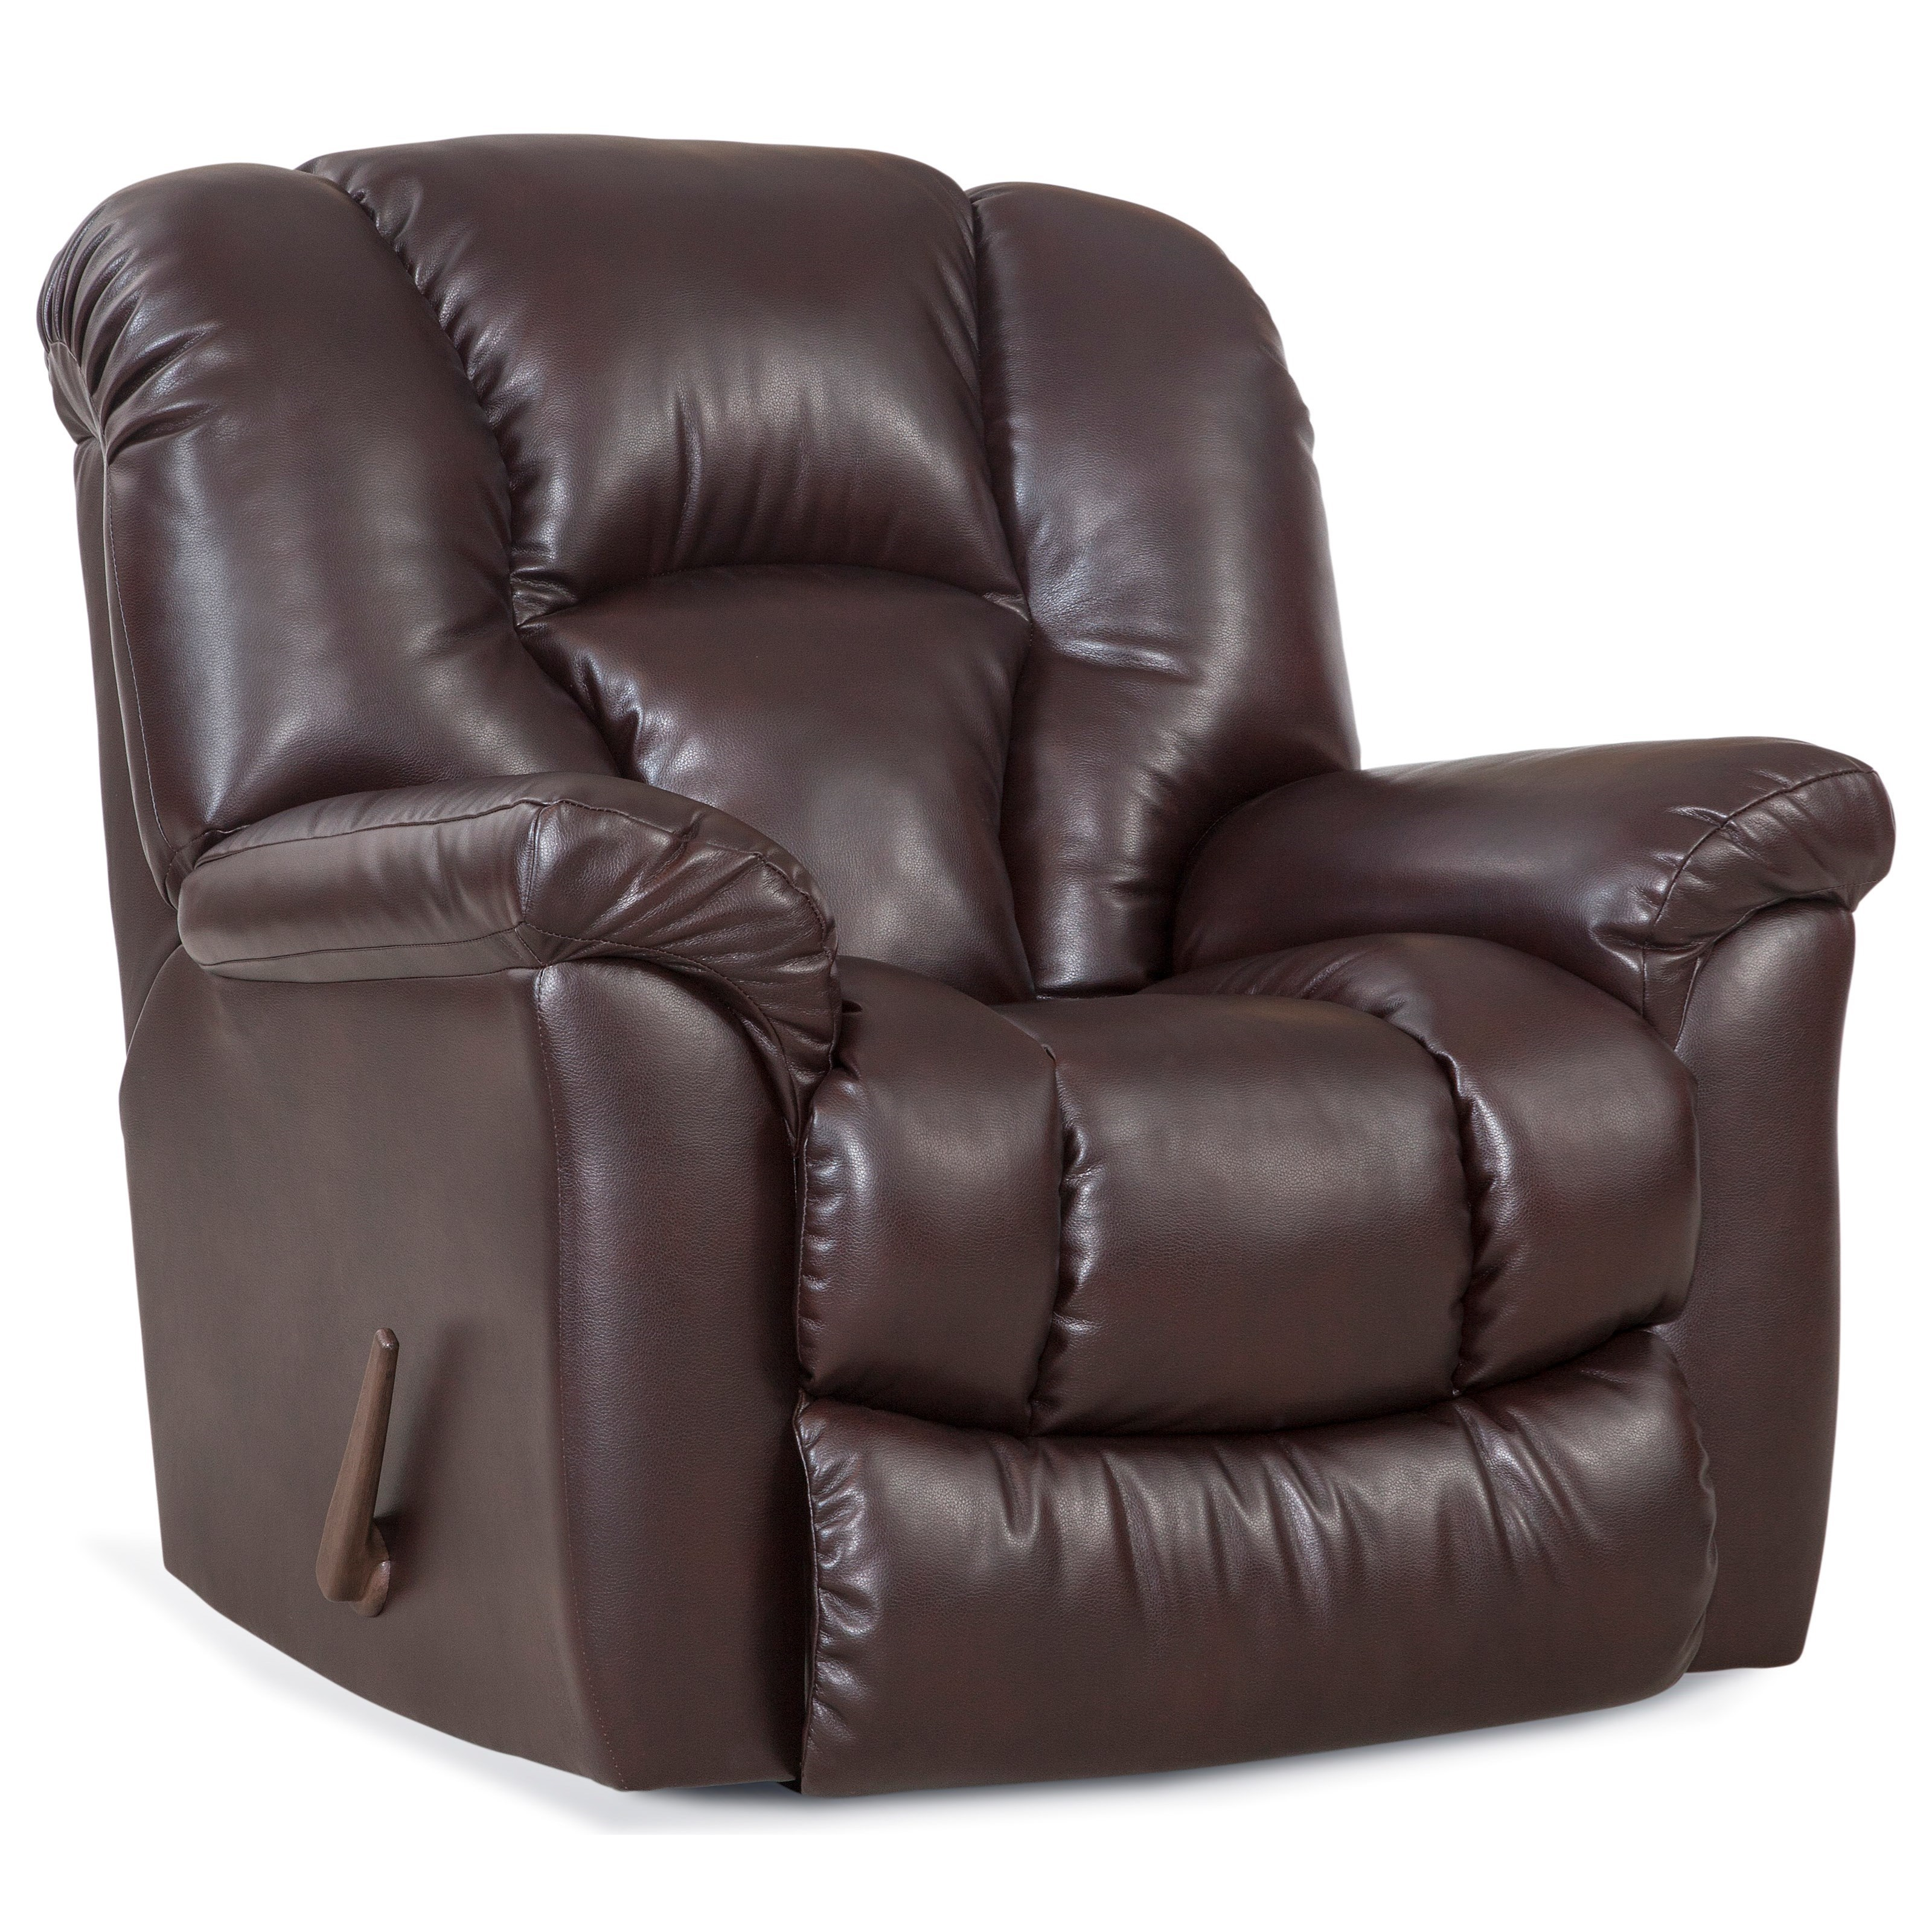 116 Rocker Recliner by HomeStretch at Adcock Furniture